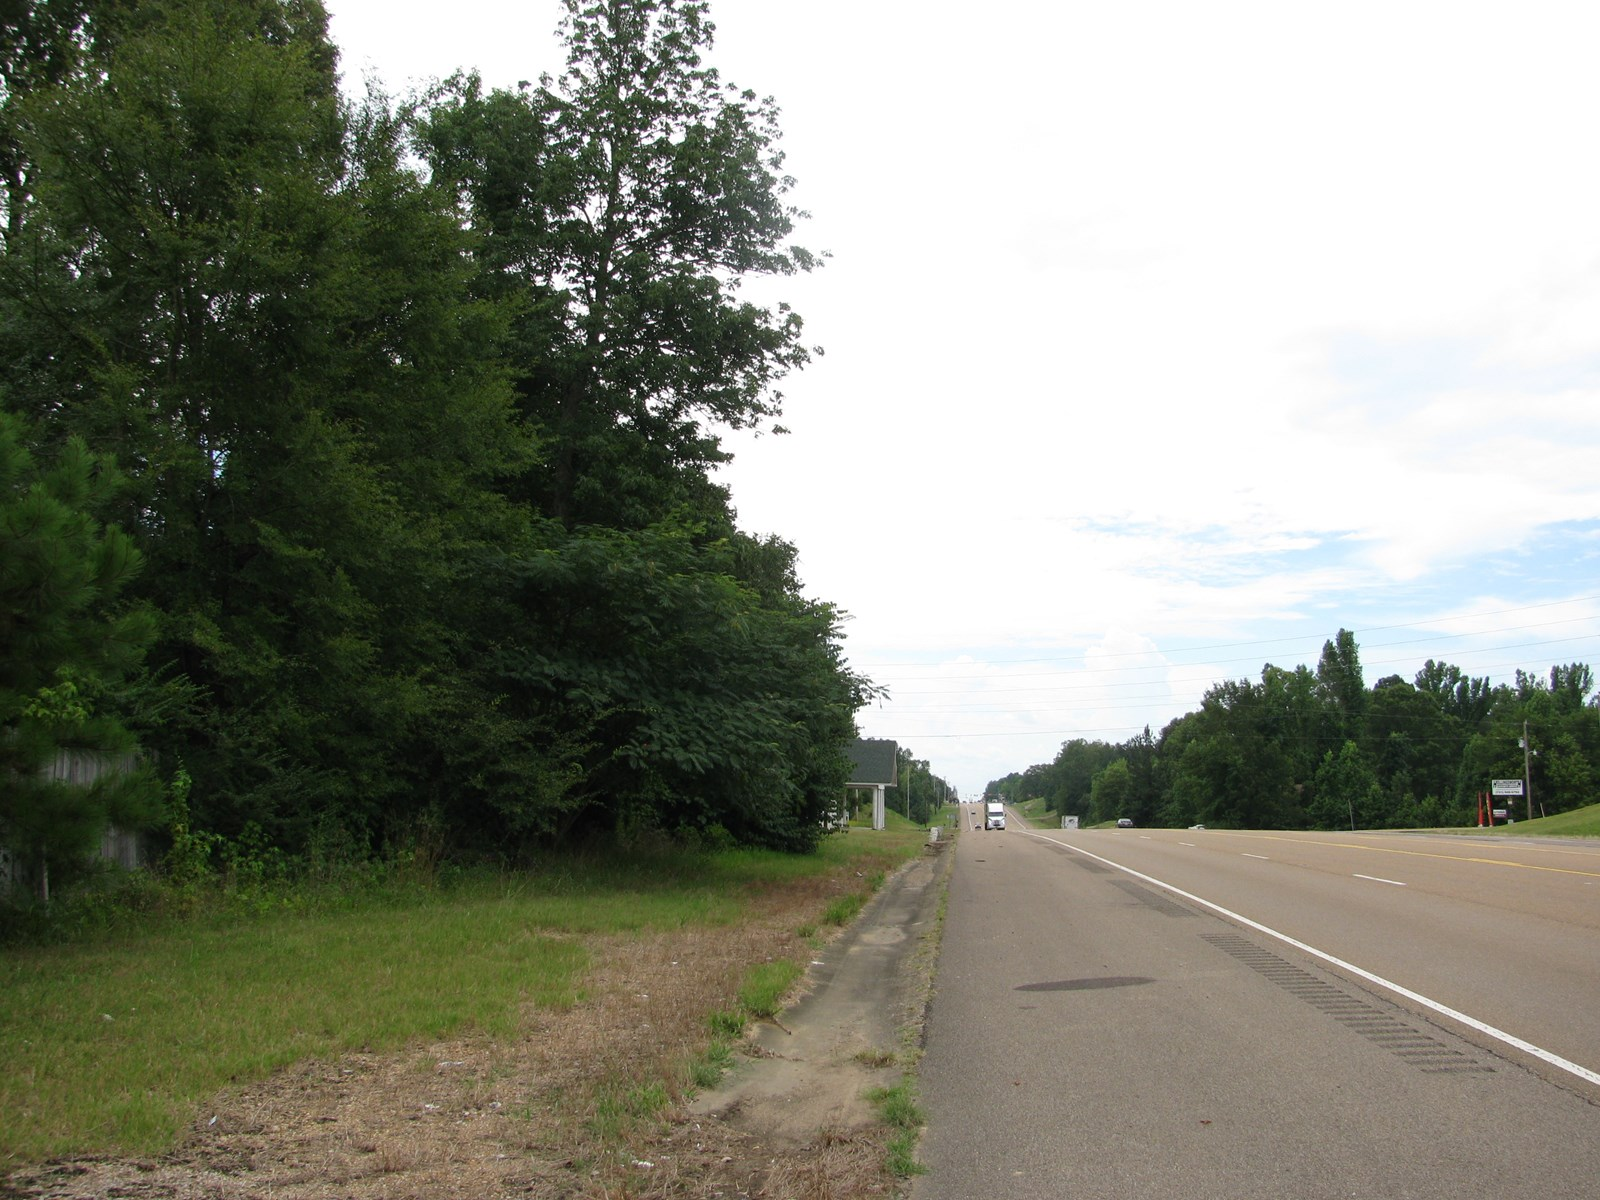 LAND FOR SALE ON HIGHWAY IN RAMER, TN, OLD HOUSES